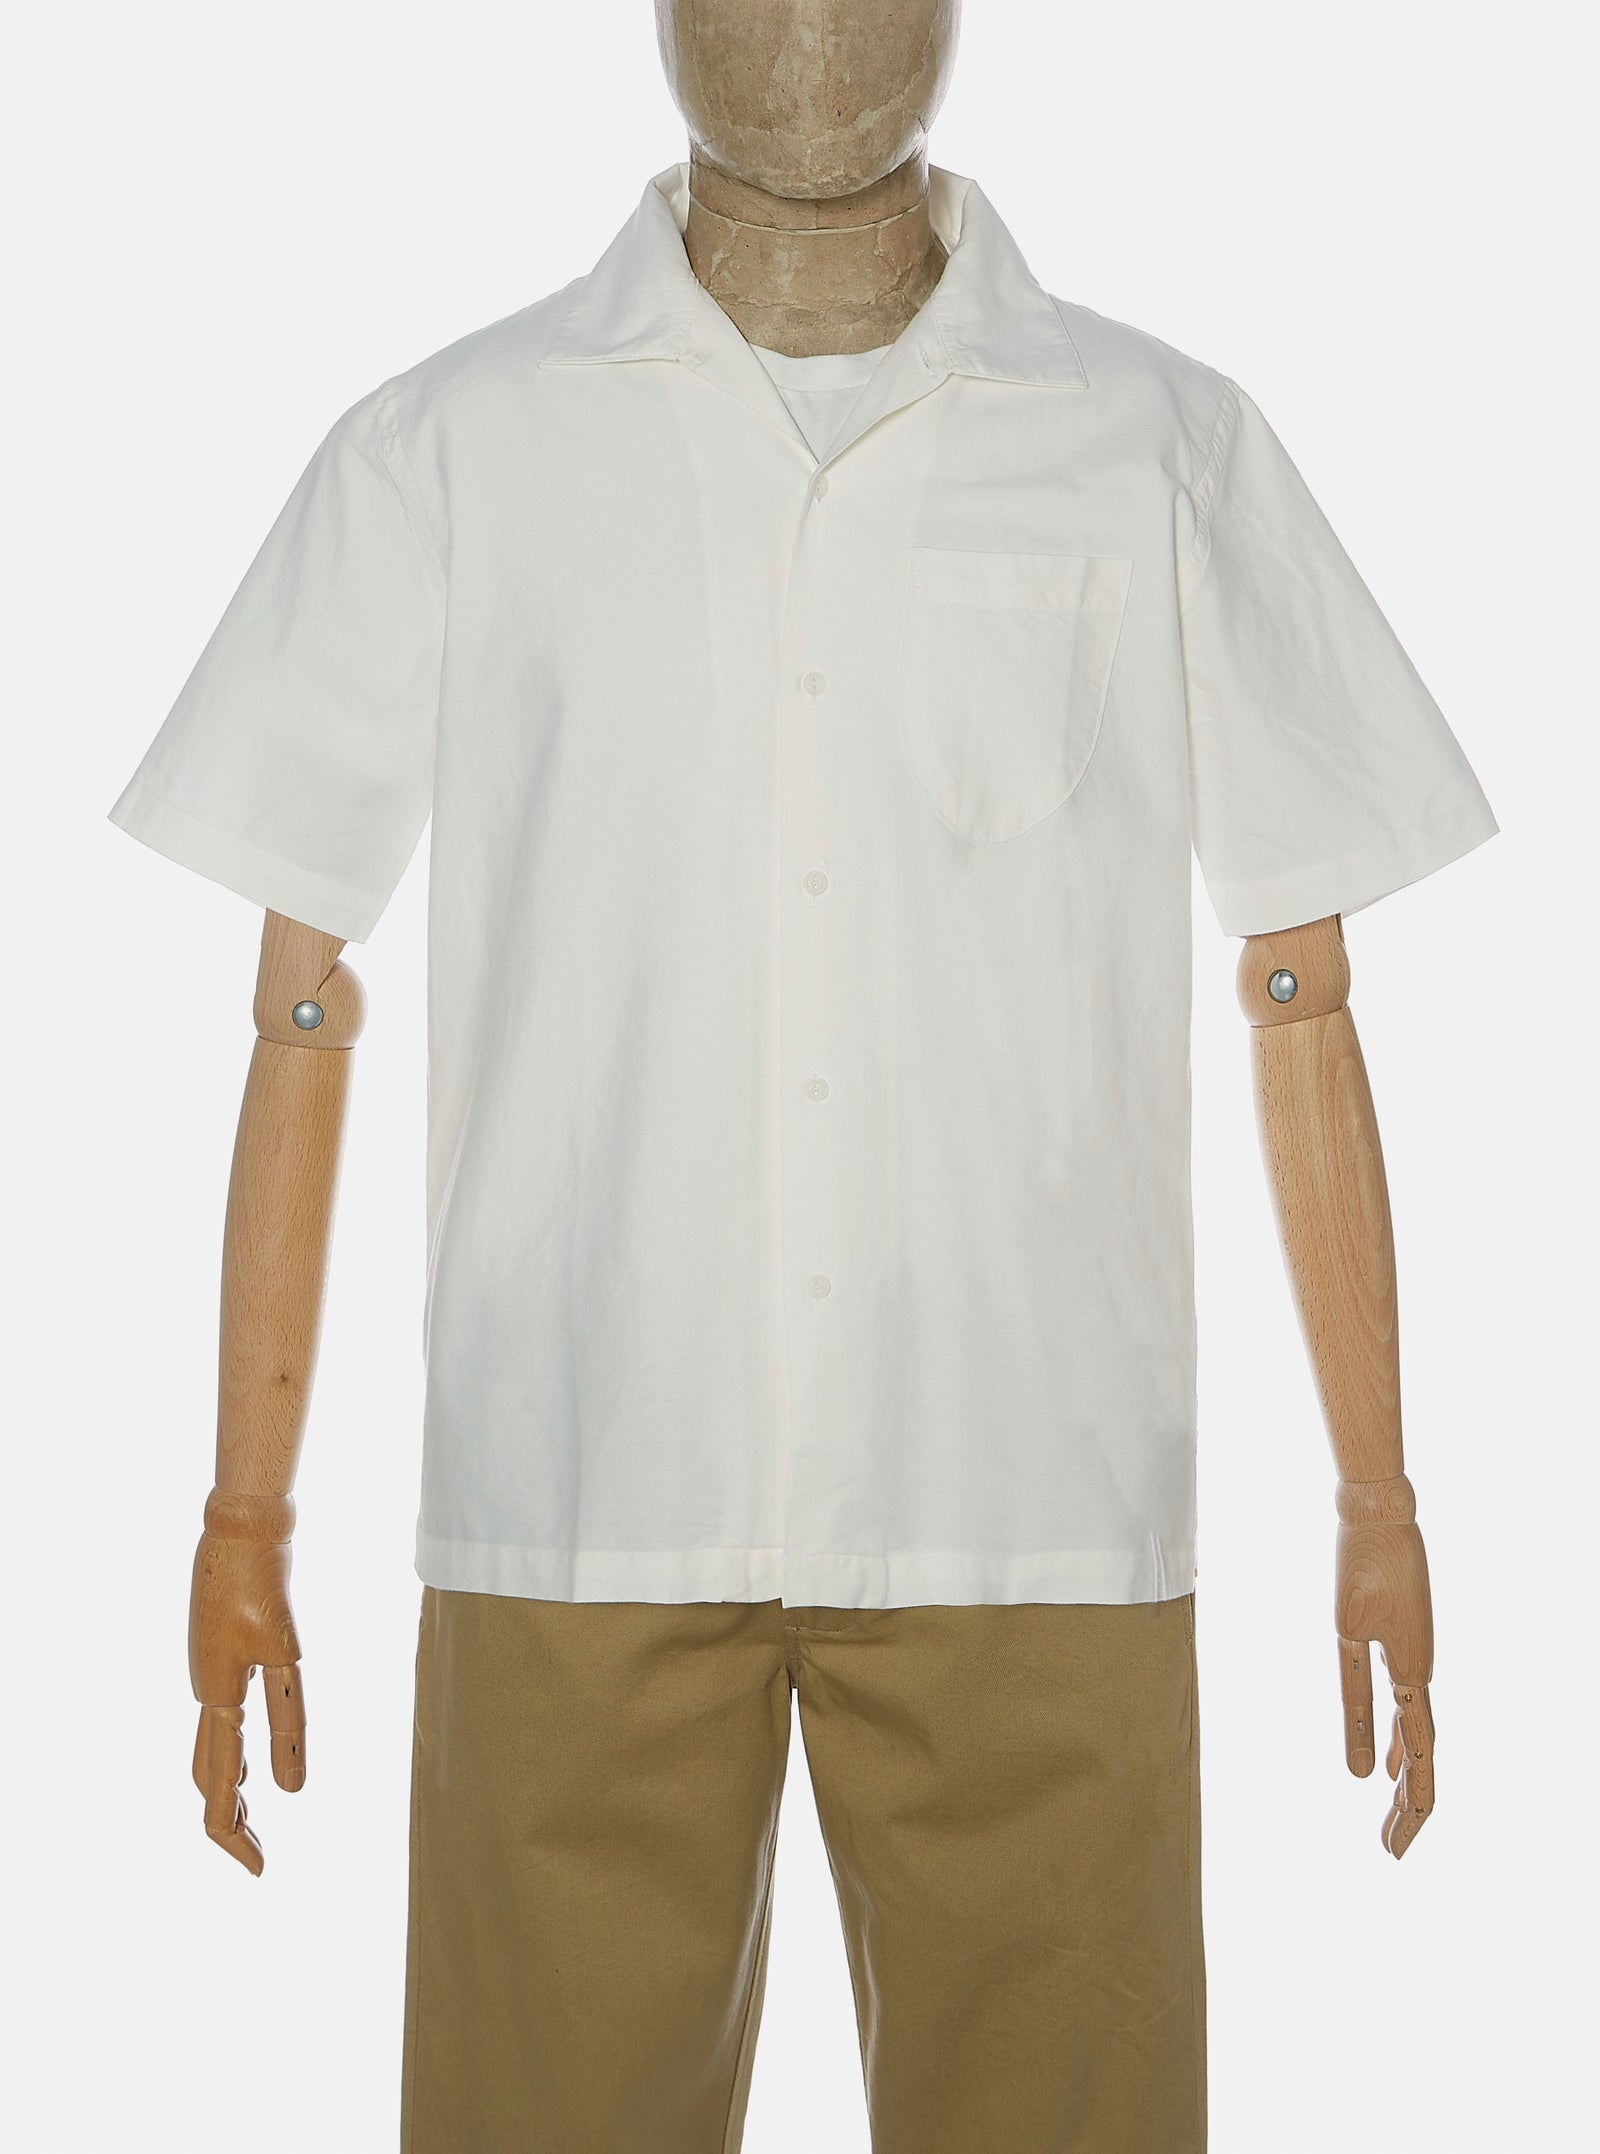 Universal Works Open Collar Shirt in Ecru Oxford